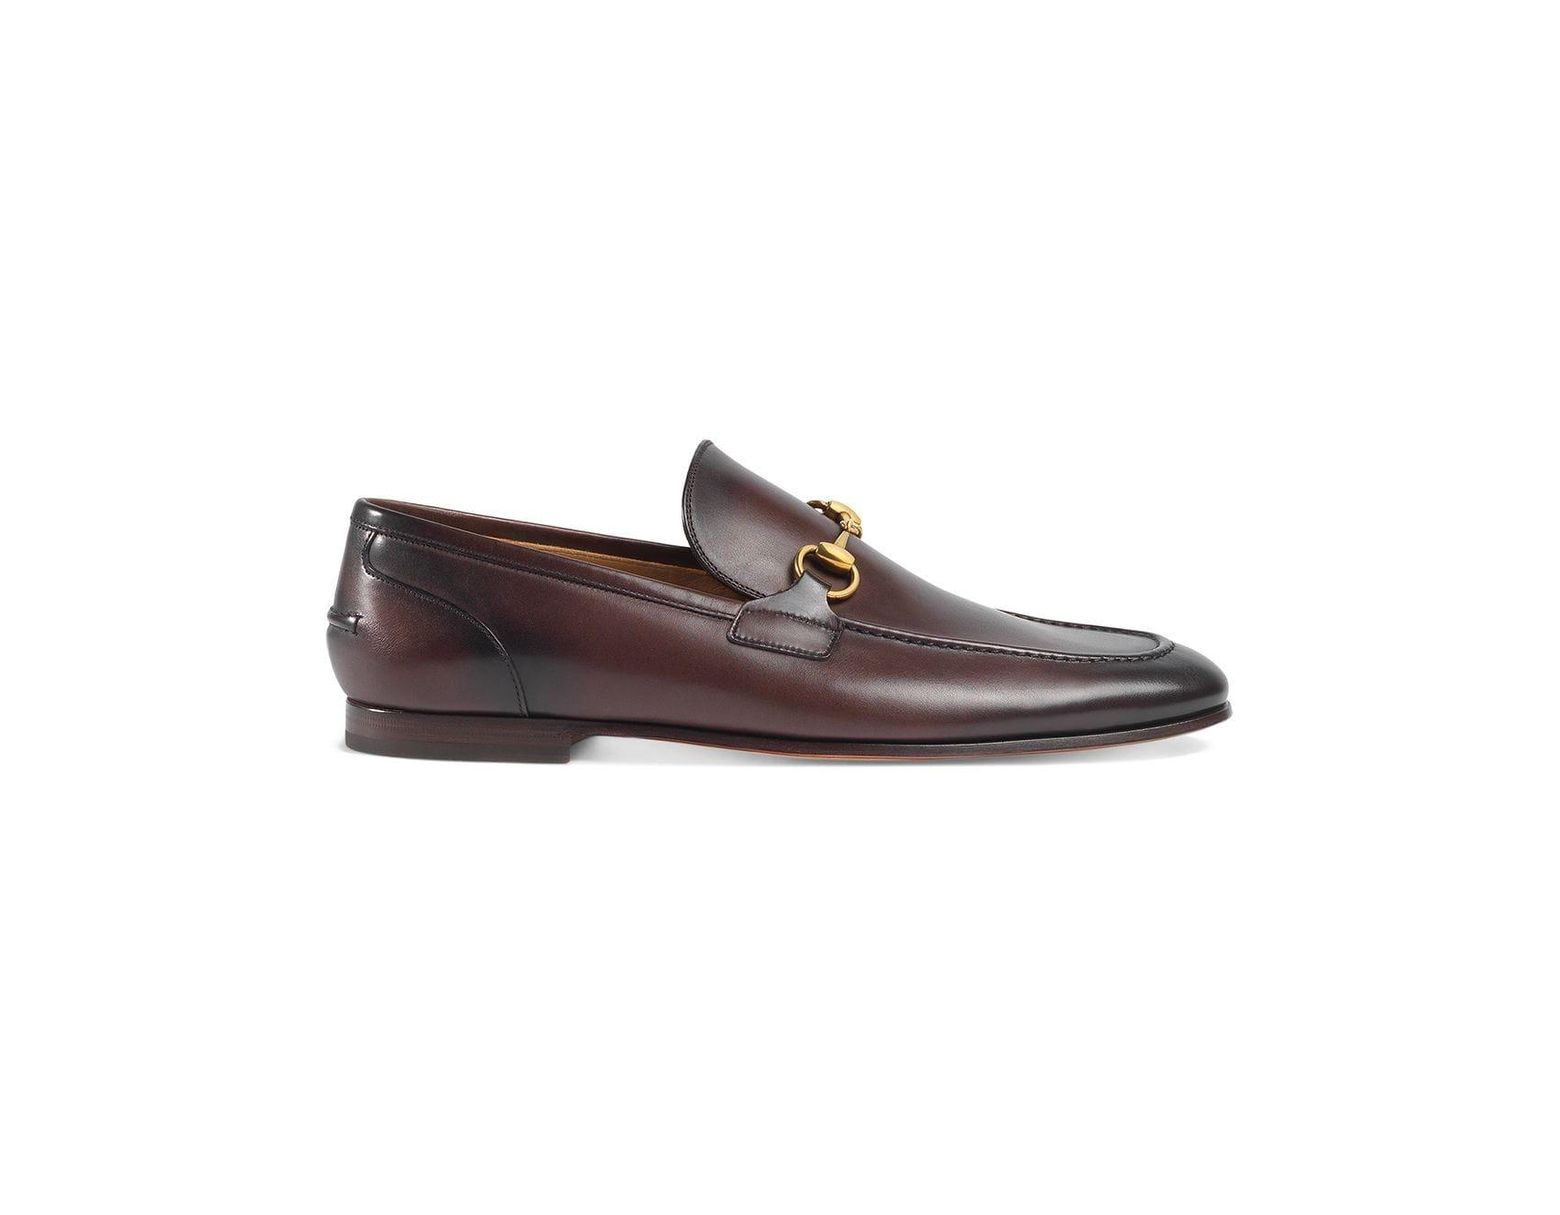 86099941c Gucci Jordaan Leather Loafer in Brown for Men - Save 12% - Lyst